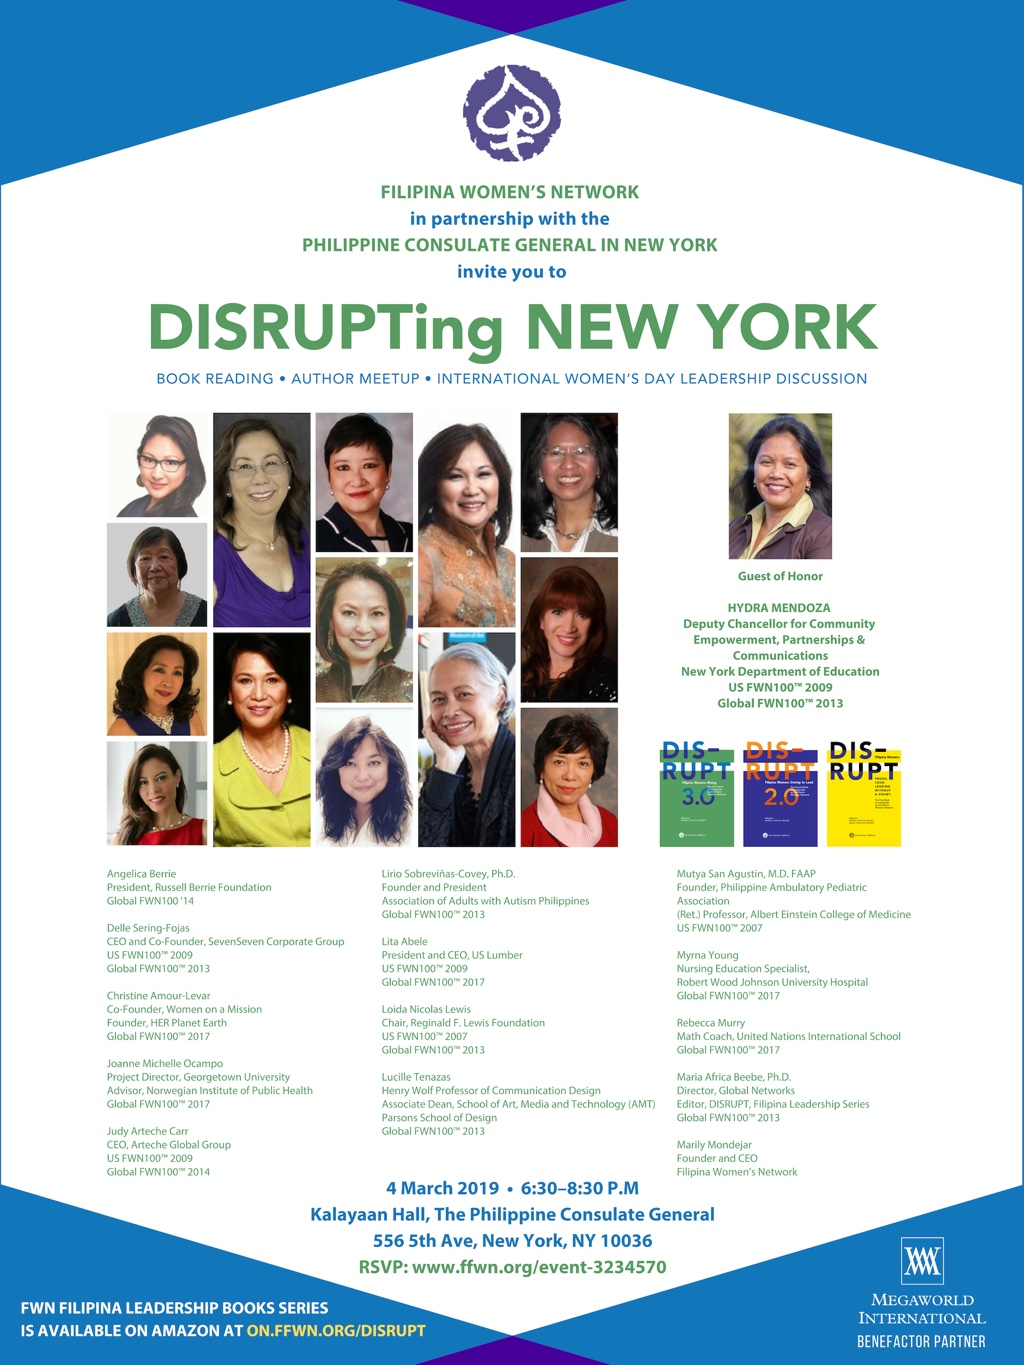 v10_DISRUPTing NEW YORK Mar 4 POSTER.jpg